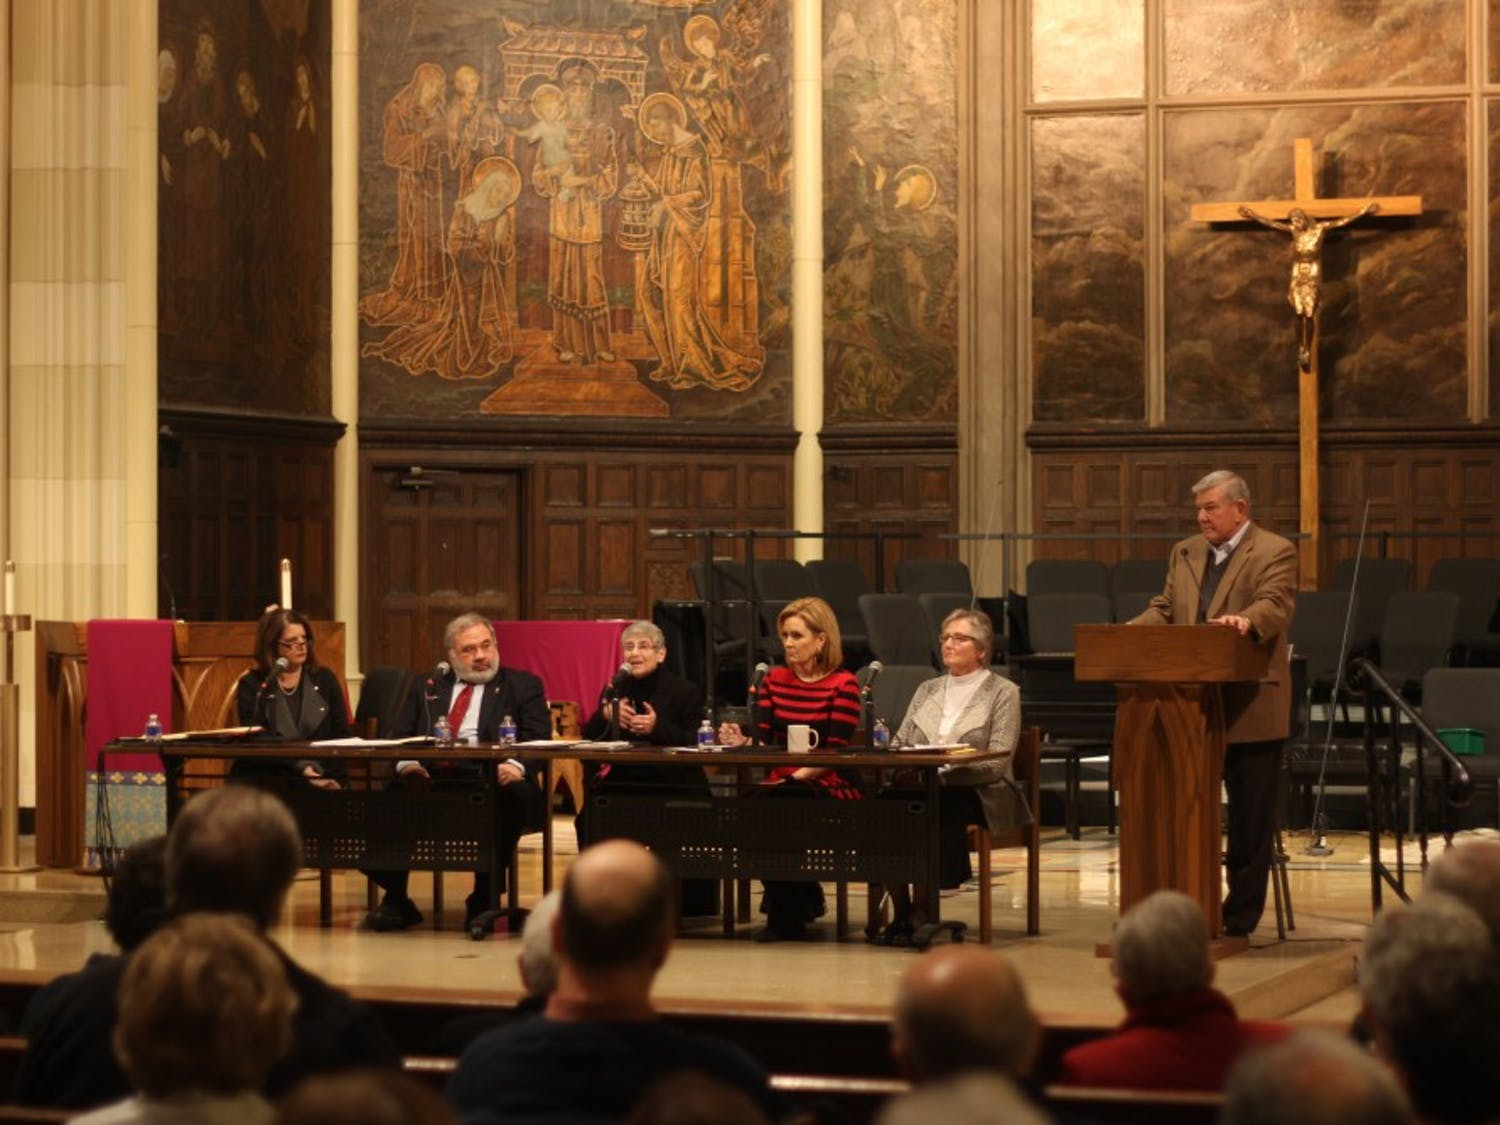 On Monday, St. Joseph's University Parish held a panel on how Catholics and the Diocese can move forward after the sexual abuse scandal. The Roman Catholic Church is in the midst of a sexual assault crisis which has affected Catholics around the world and right in Buffalo.